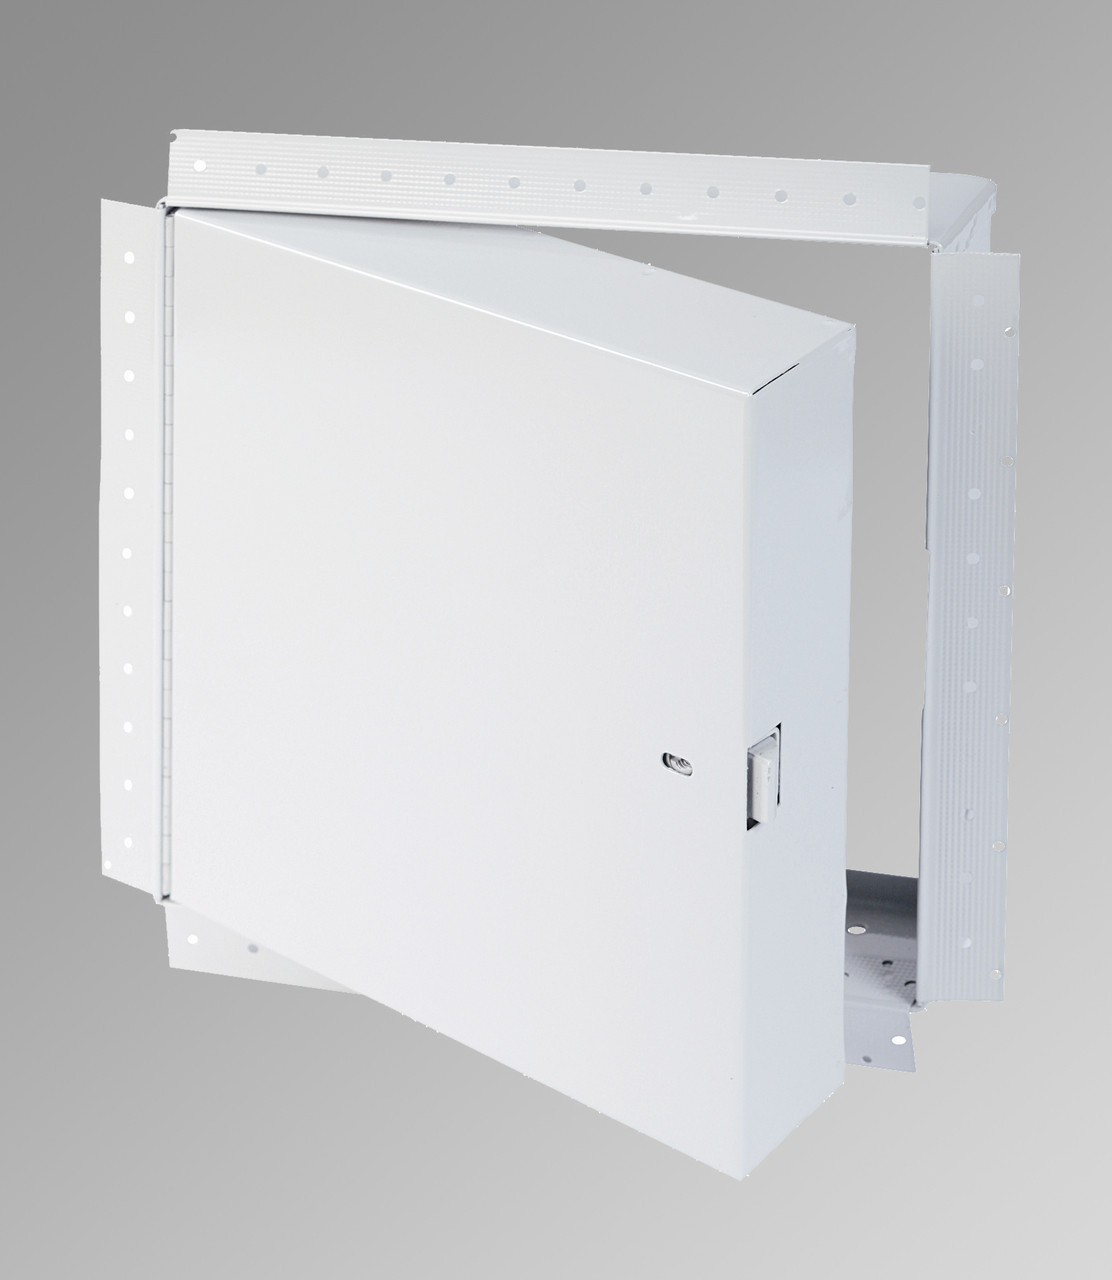 18 x 18 fire rated insulated access door with drywall for 18 x 18 access door